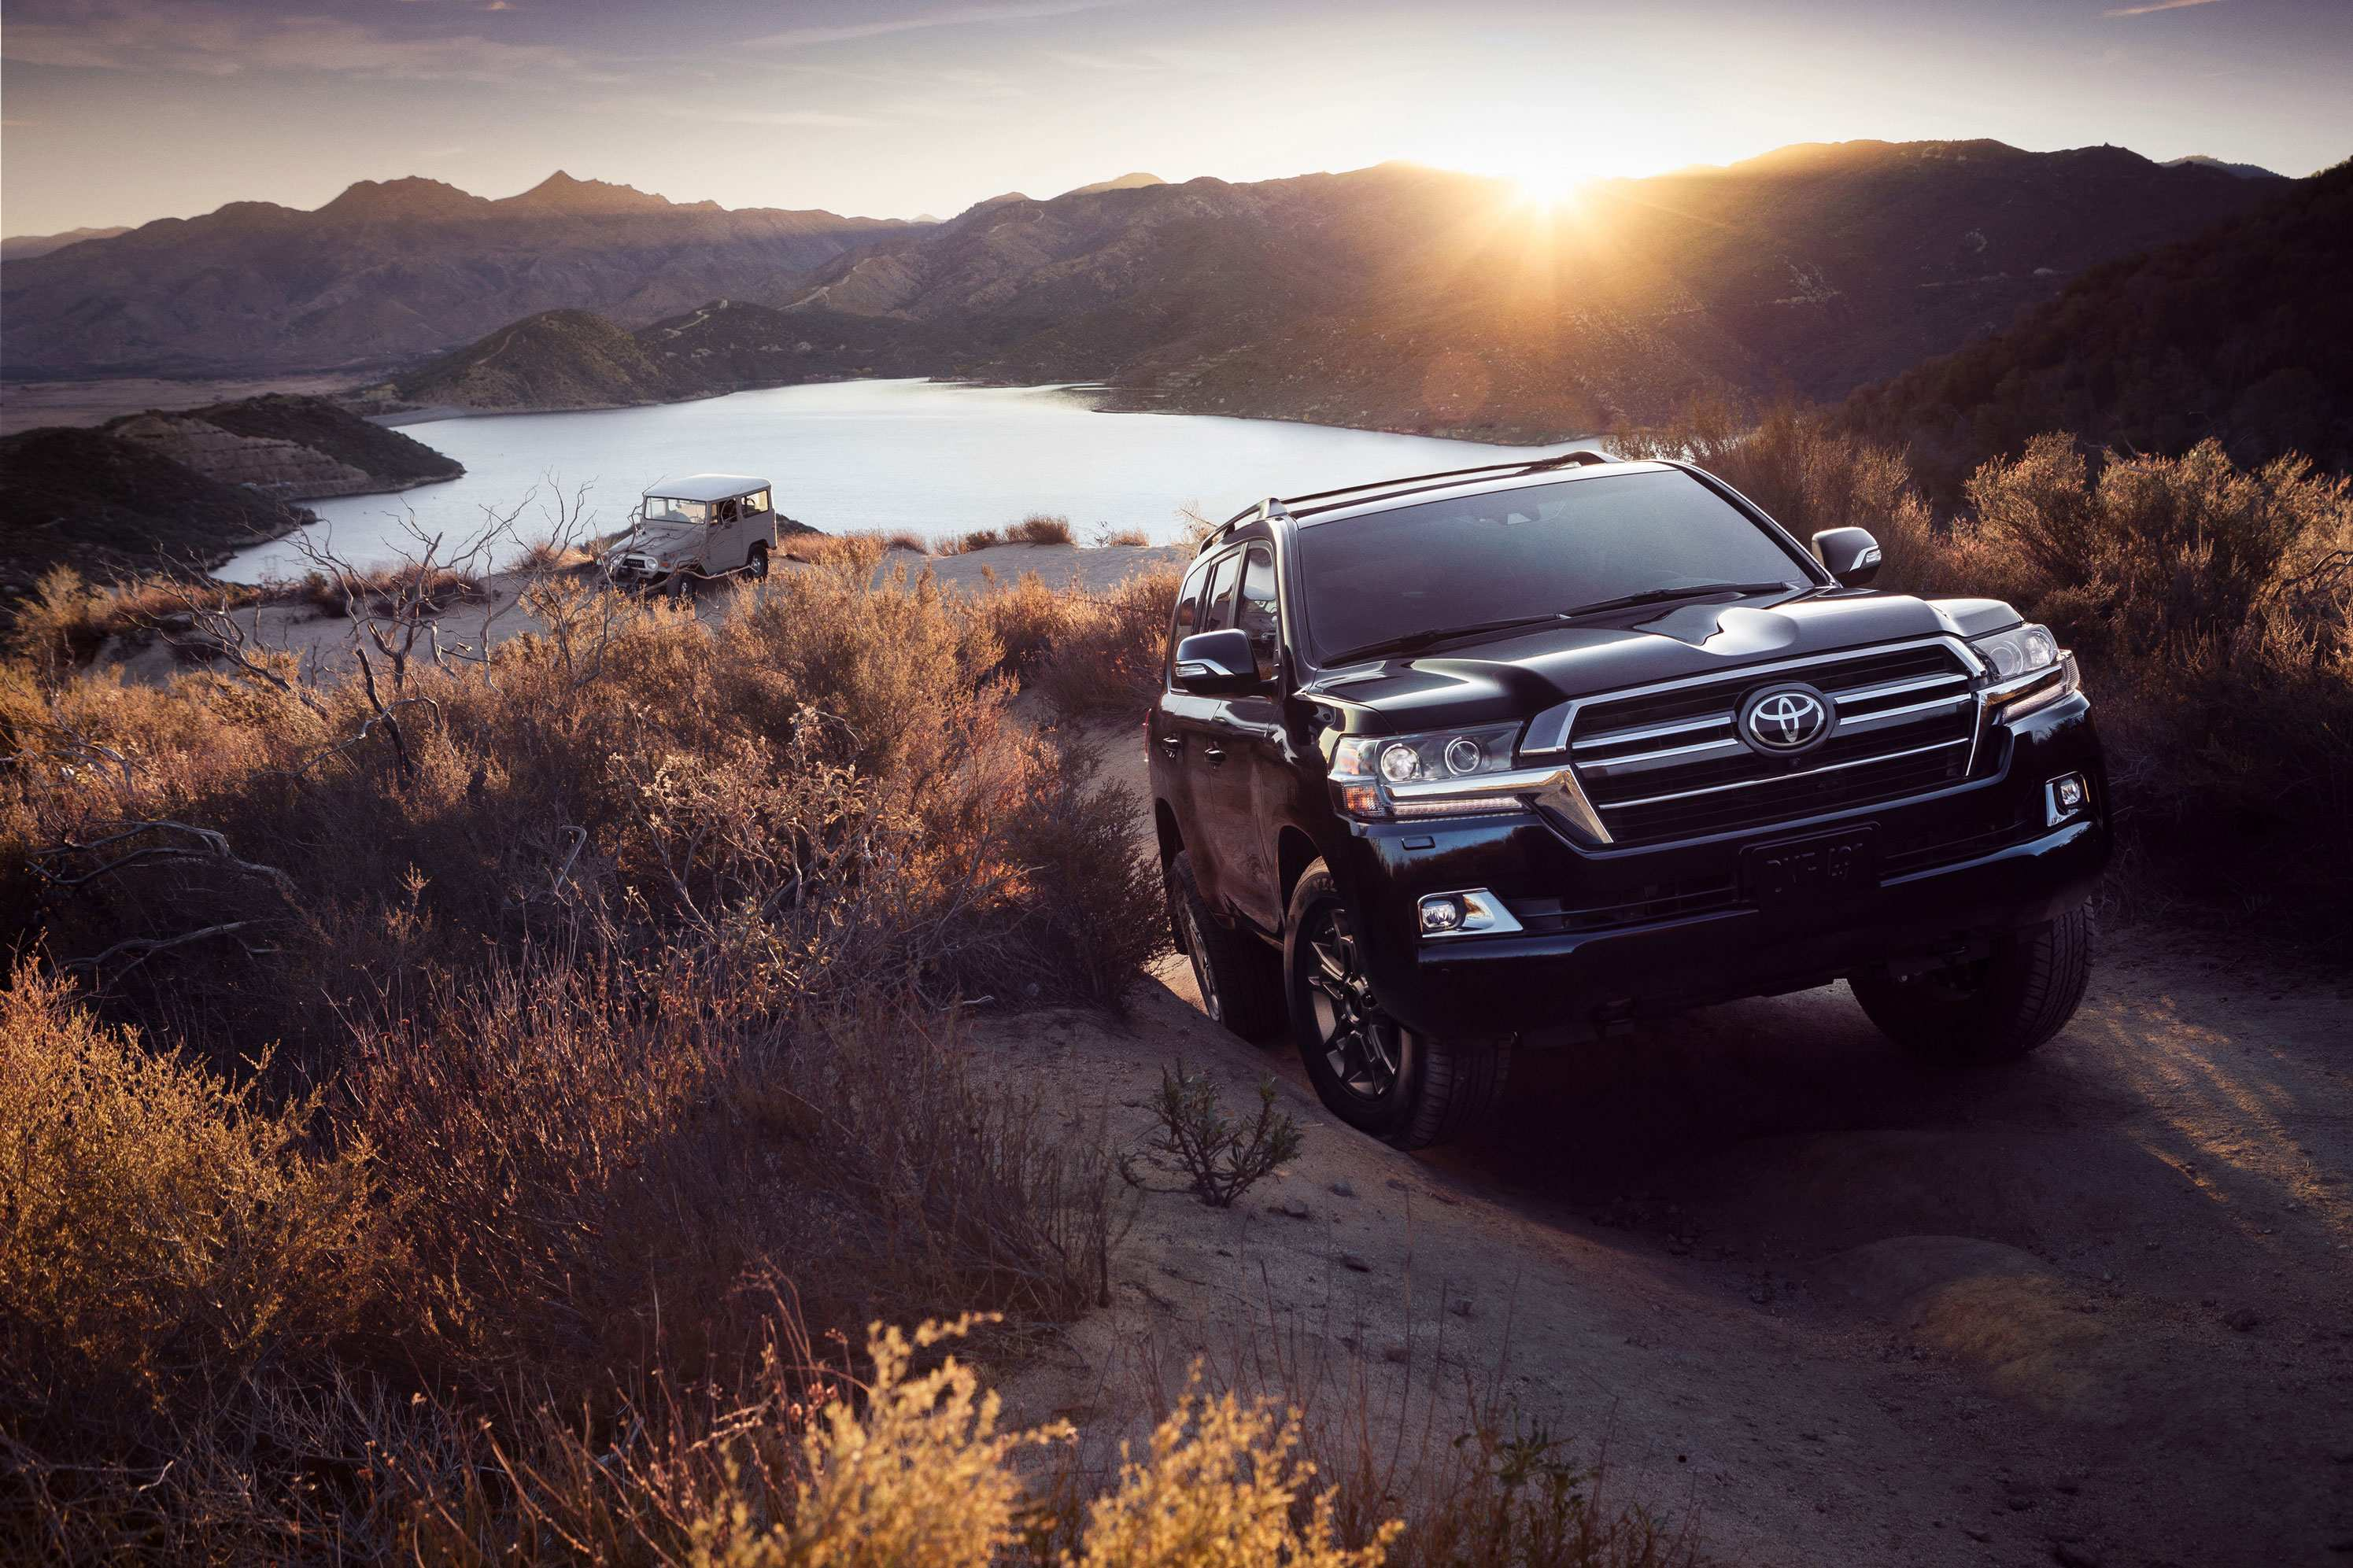 68 New 2020 Toyota Land Cruiser New Concept by 2020 Toyota Land Cruiser